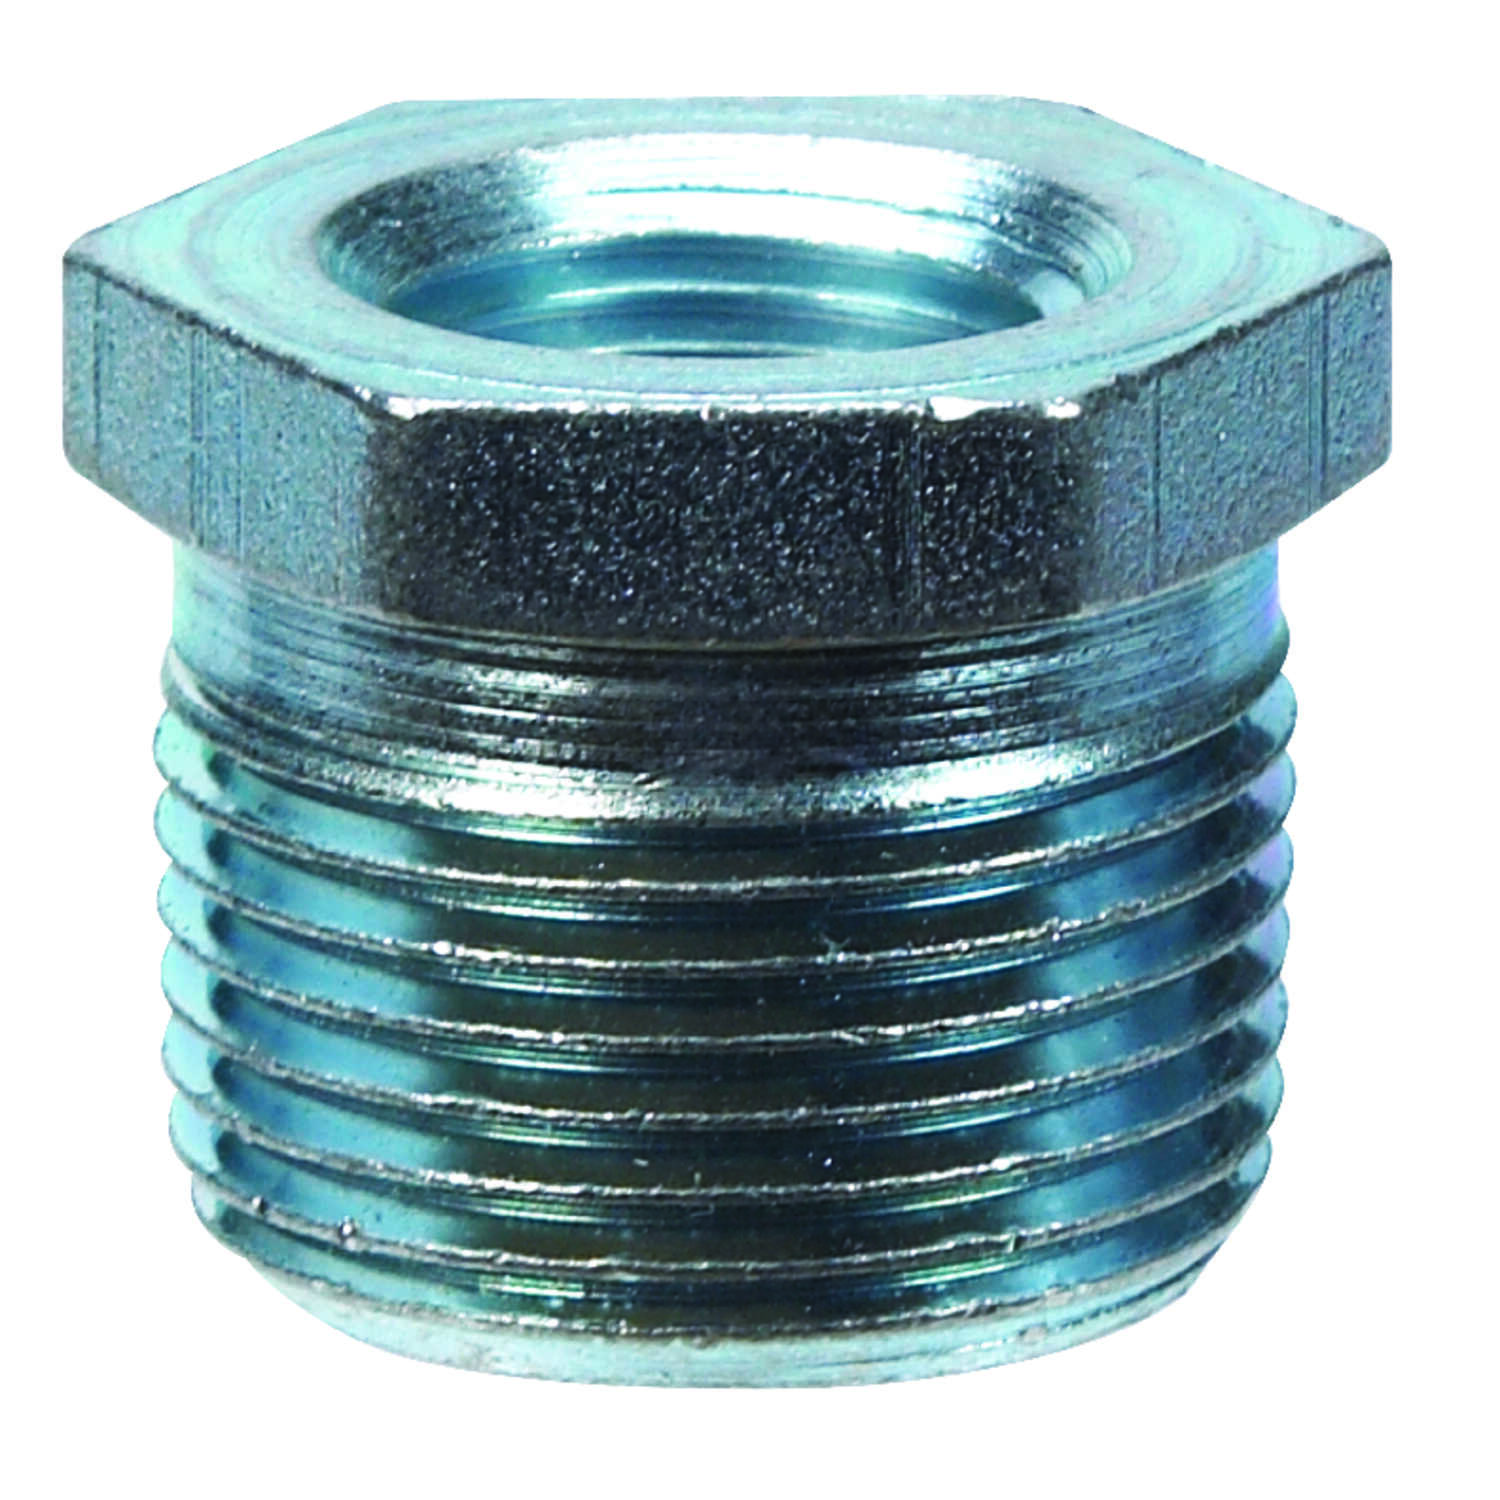 Billco  1/2 in. MPT  3/8 in. Dia. x 0.8 in. L MPT  Galvanized Steel  Hex Bushing